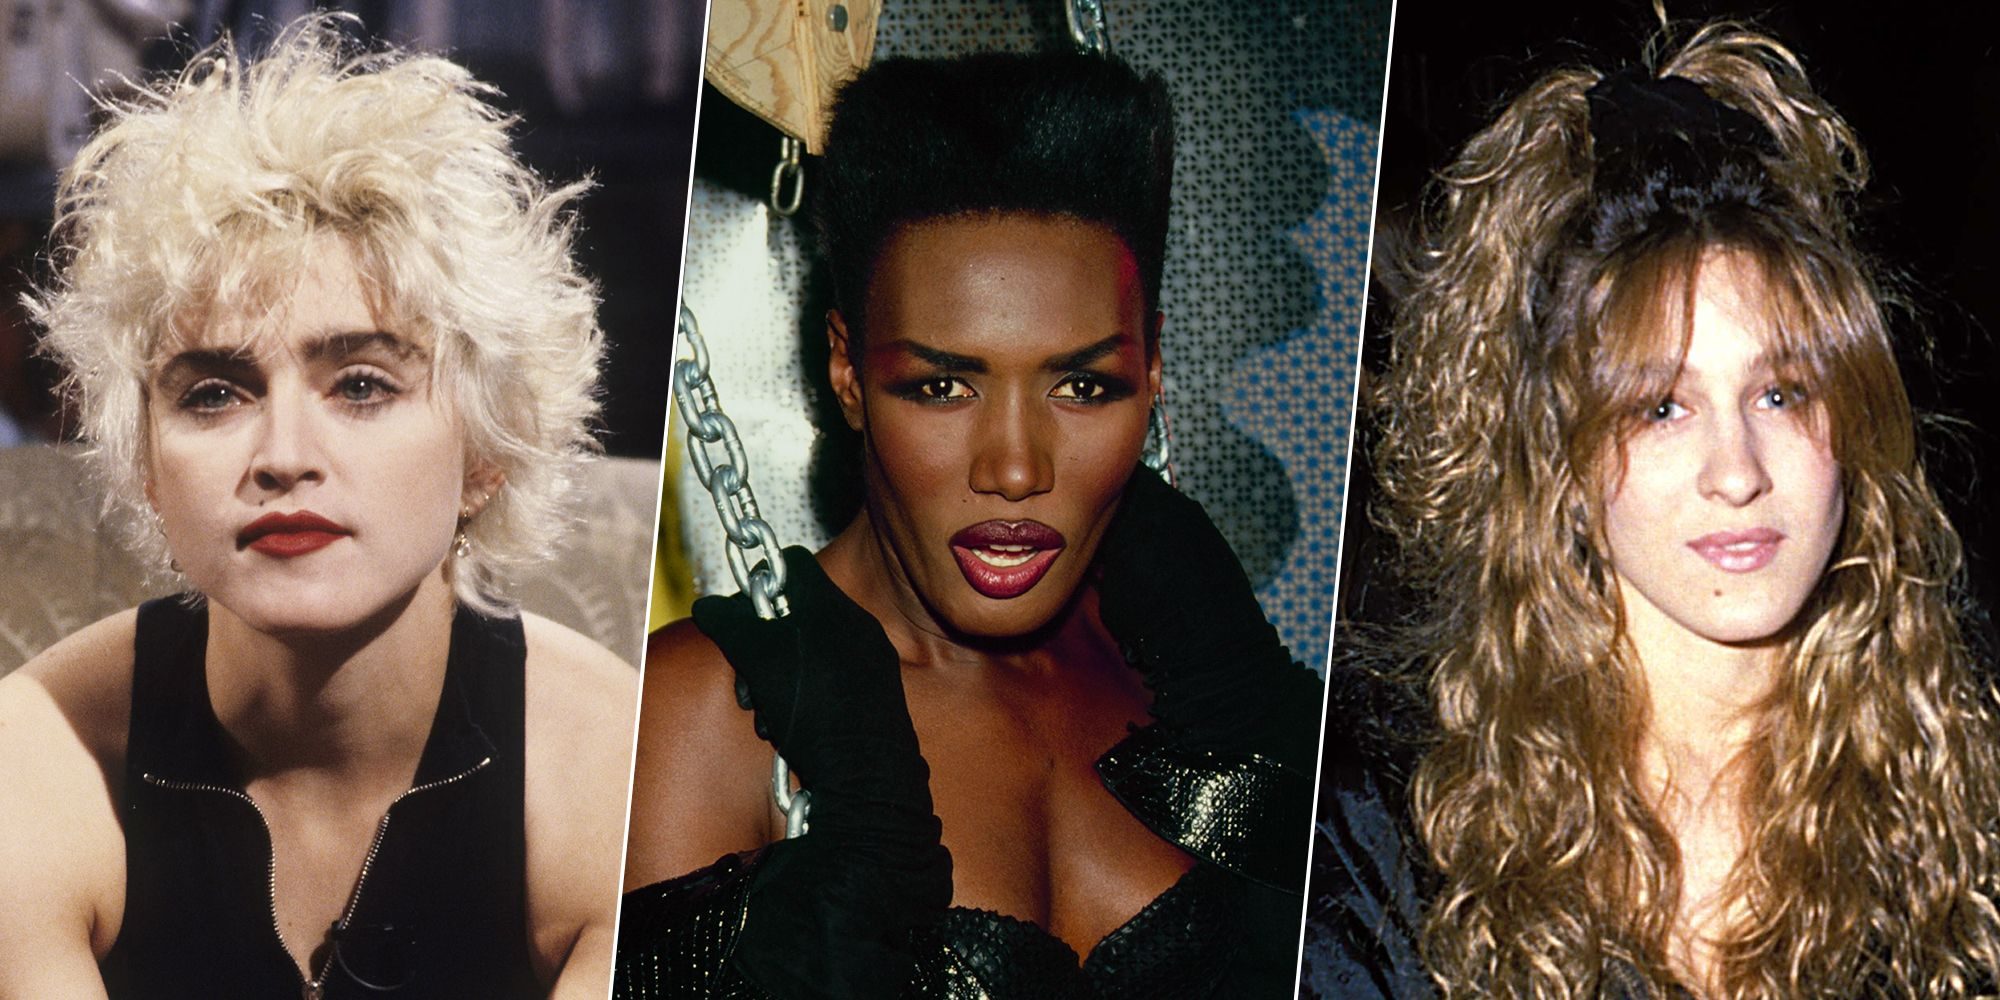 The standard of feminine beauty of the 80s